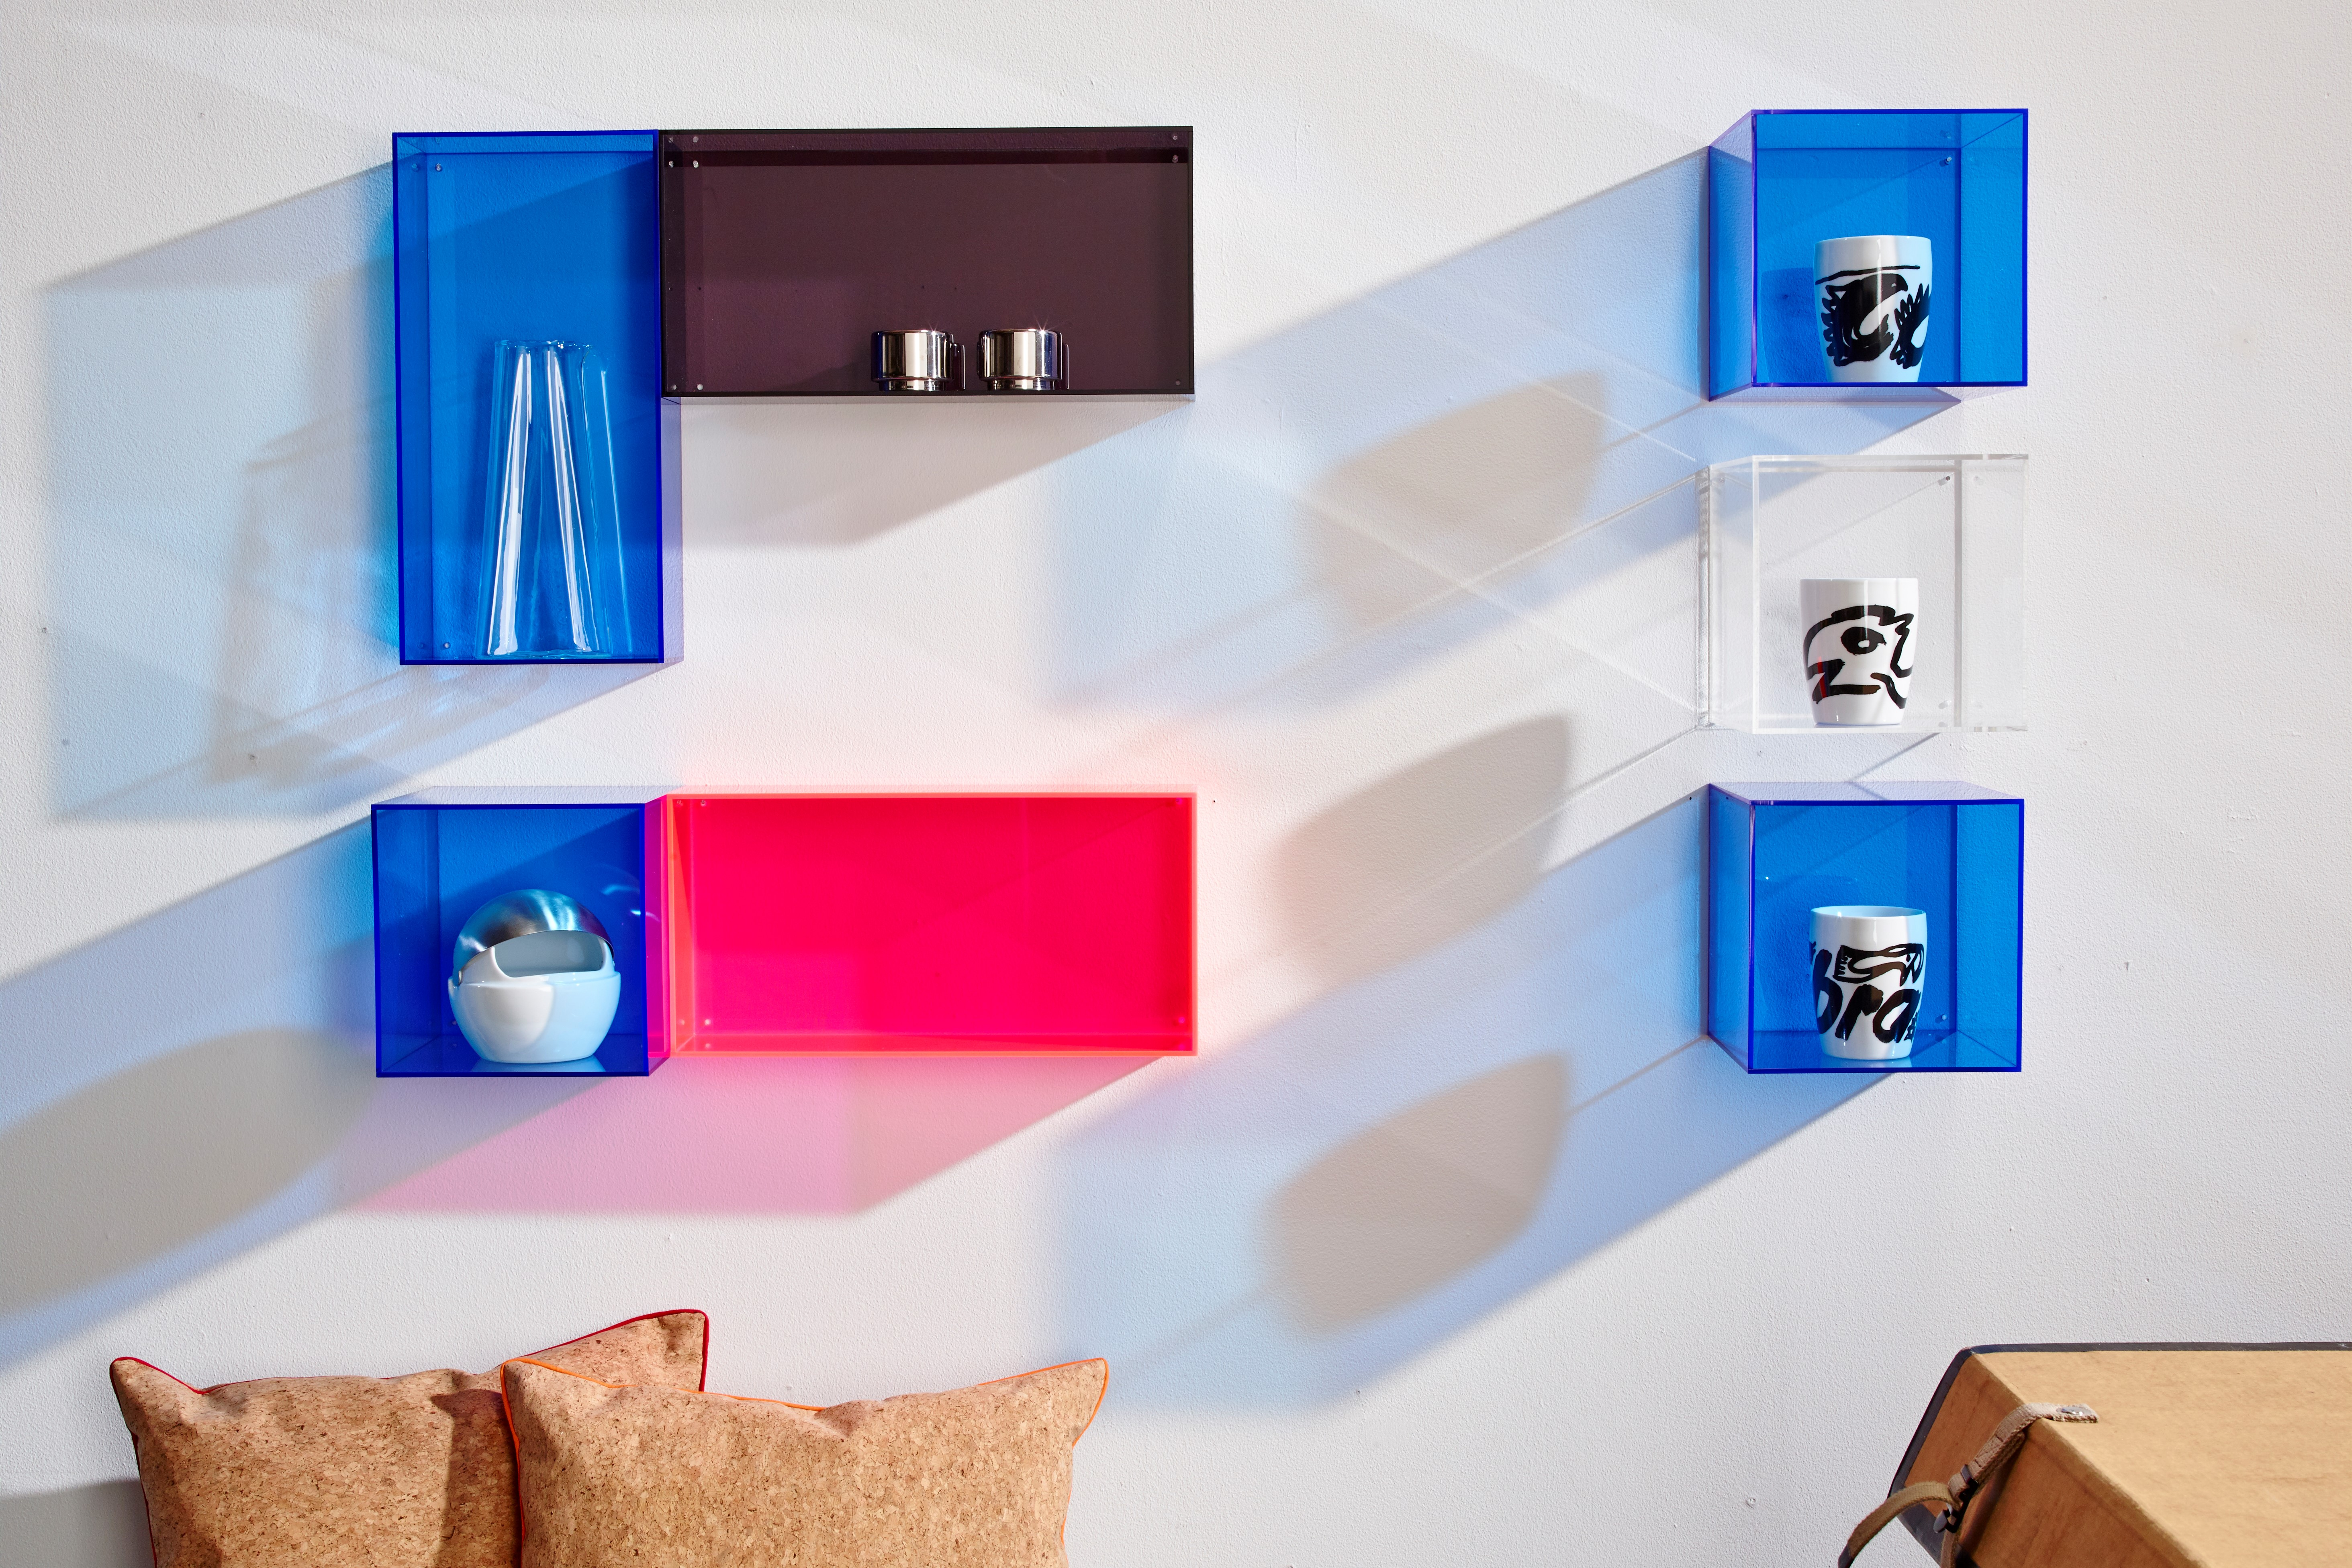 Acrylic boxes and interior design